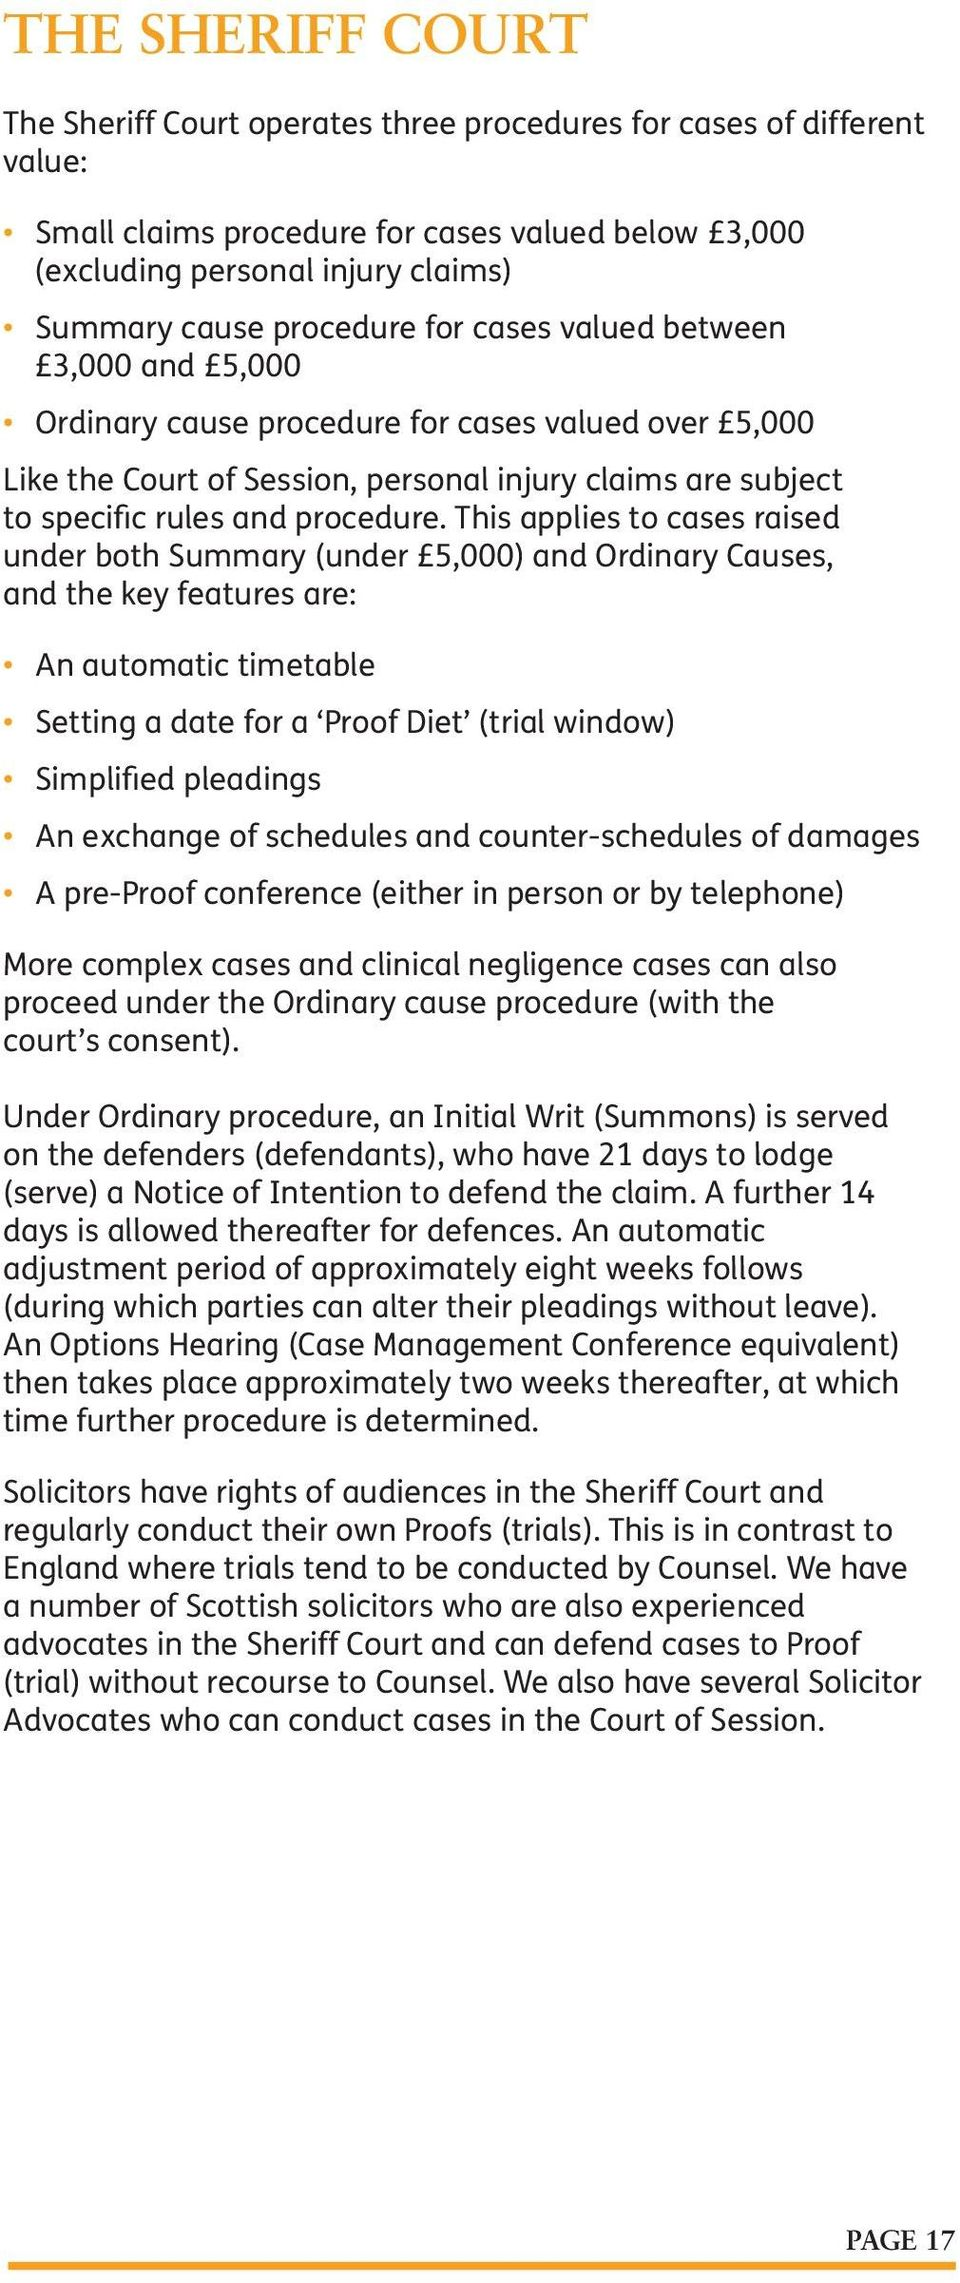 This applies to cases raised under both Summary (under 5,000) and Ordinary Causes, and the key features are: An automatic timetable Setting a date for a Proof Diet (trial window) Simplified pleadings